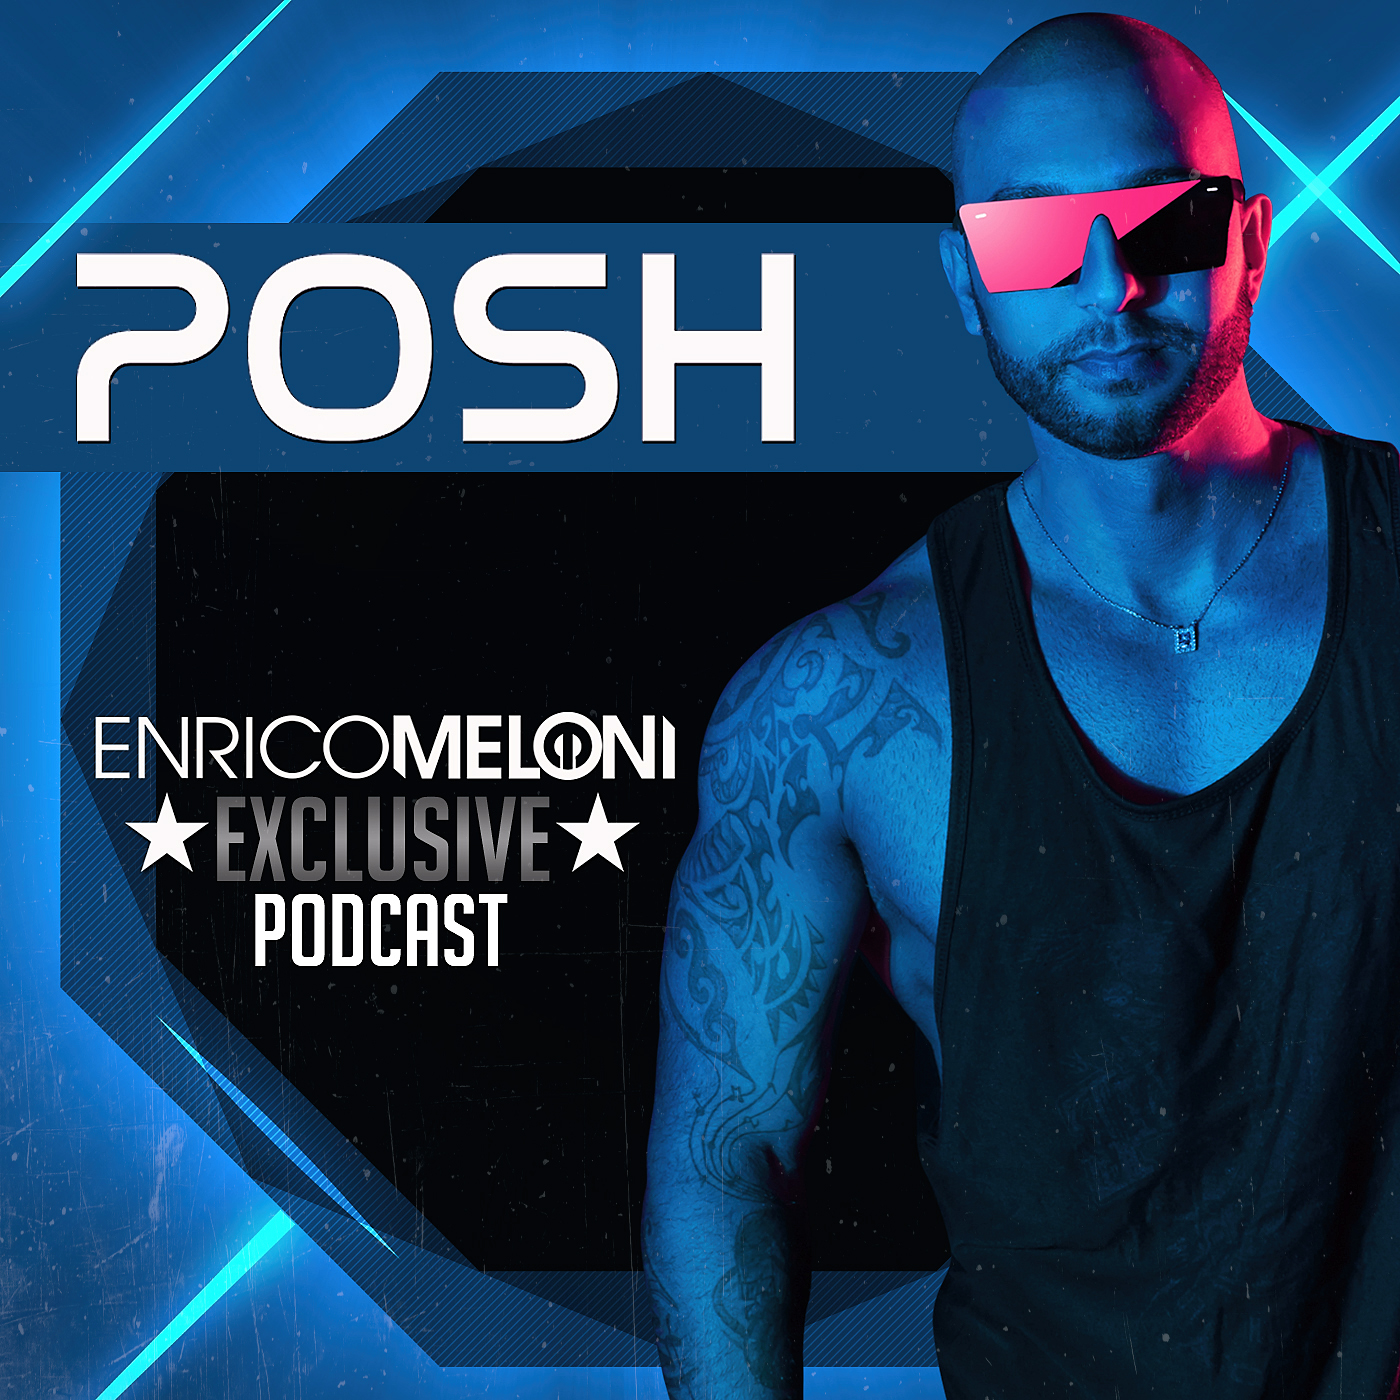 ENRICO MELONI - POSH (Exclusive Promo Set)